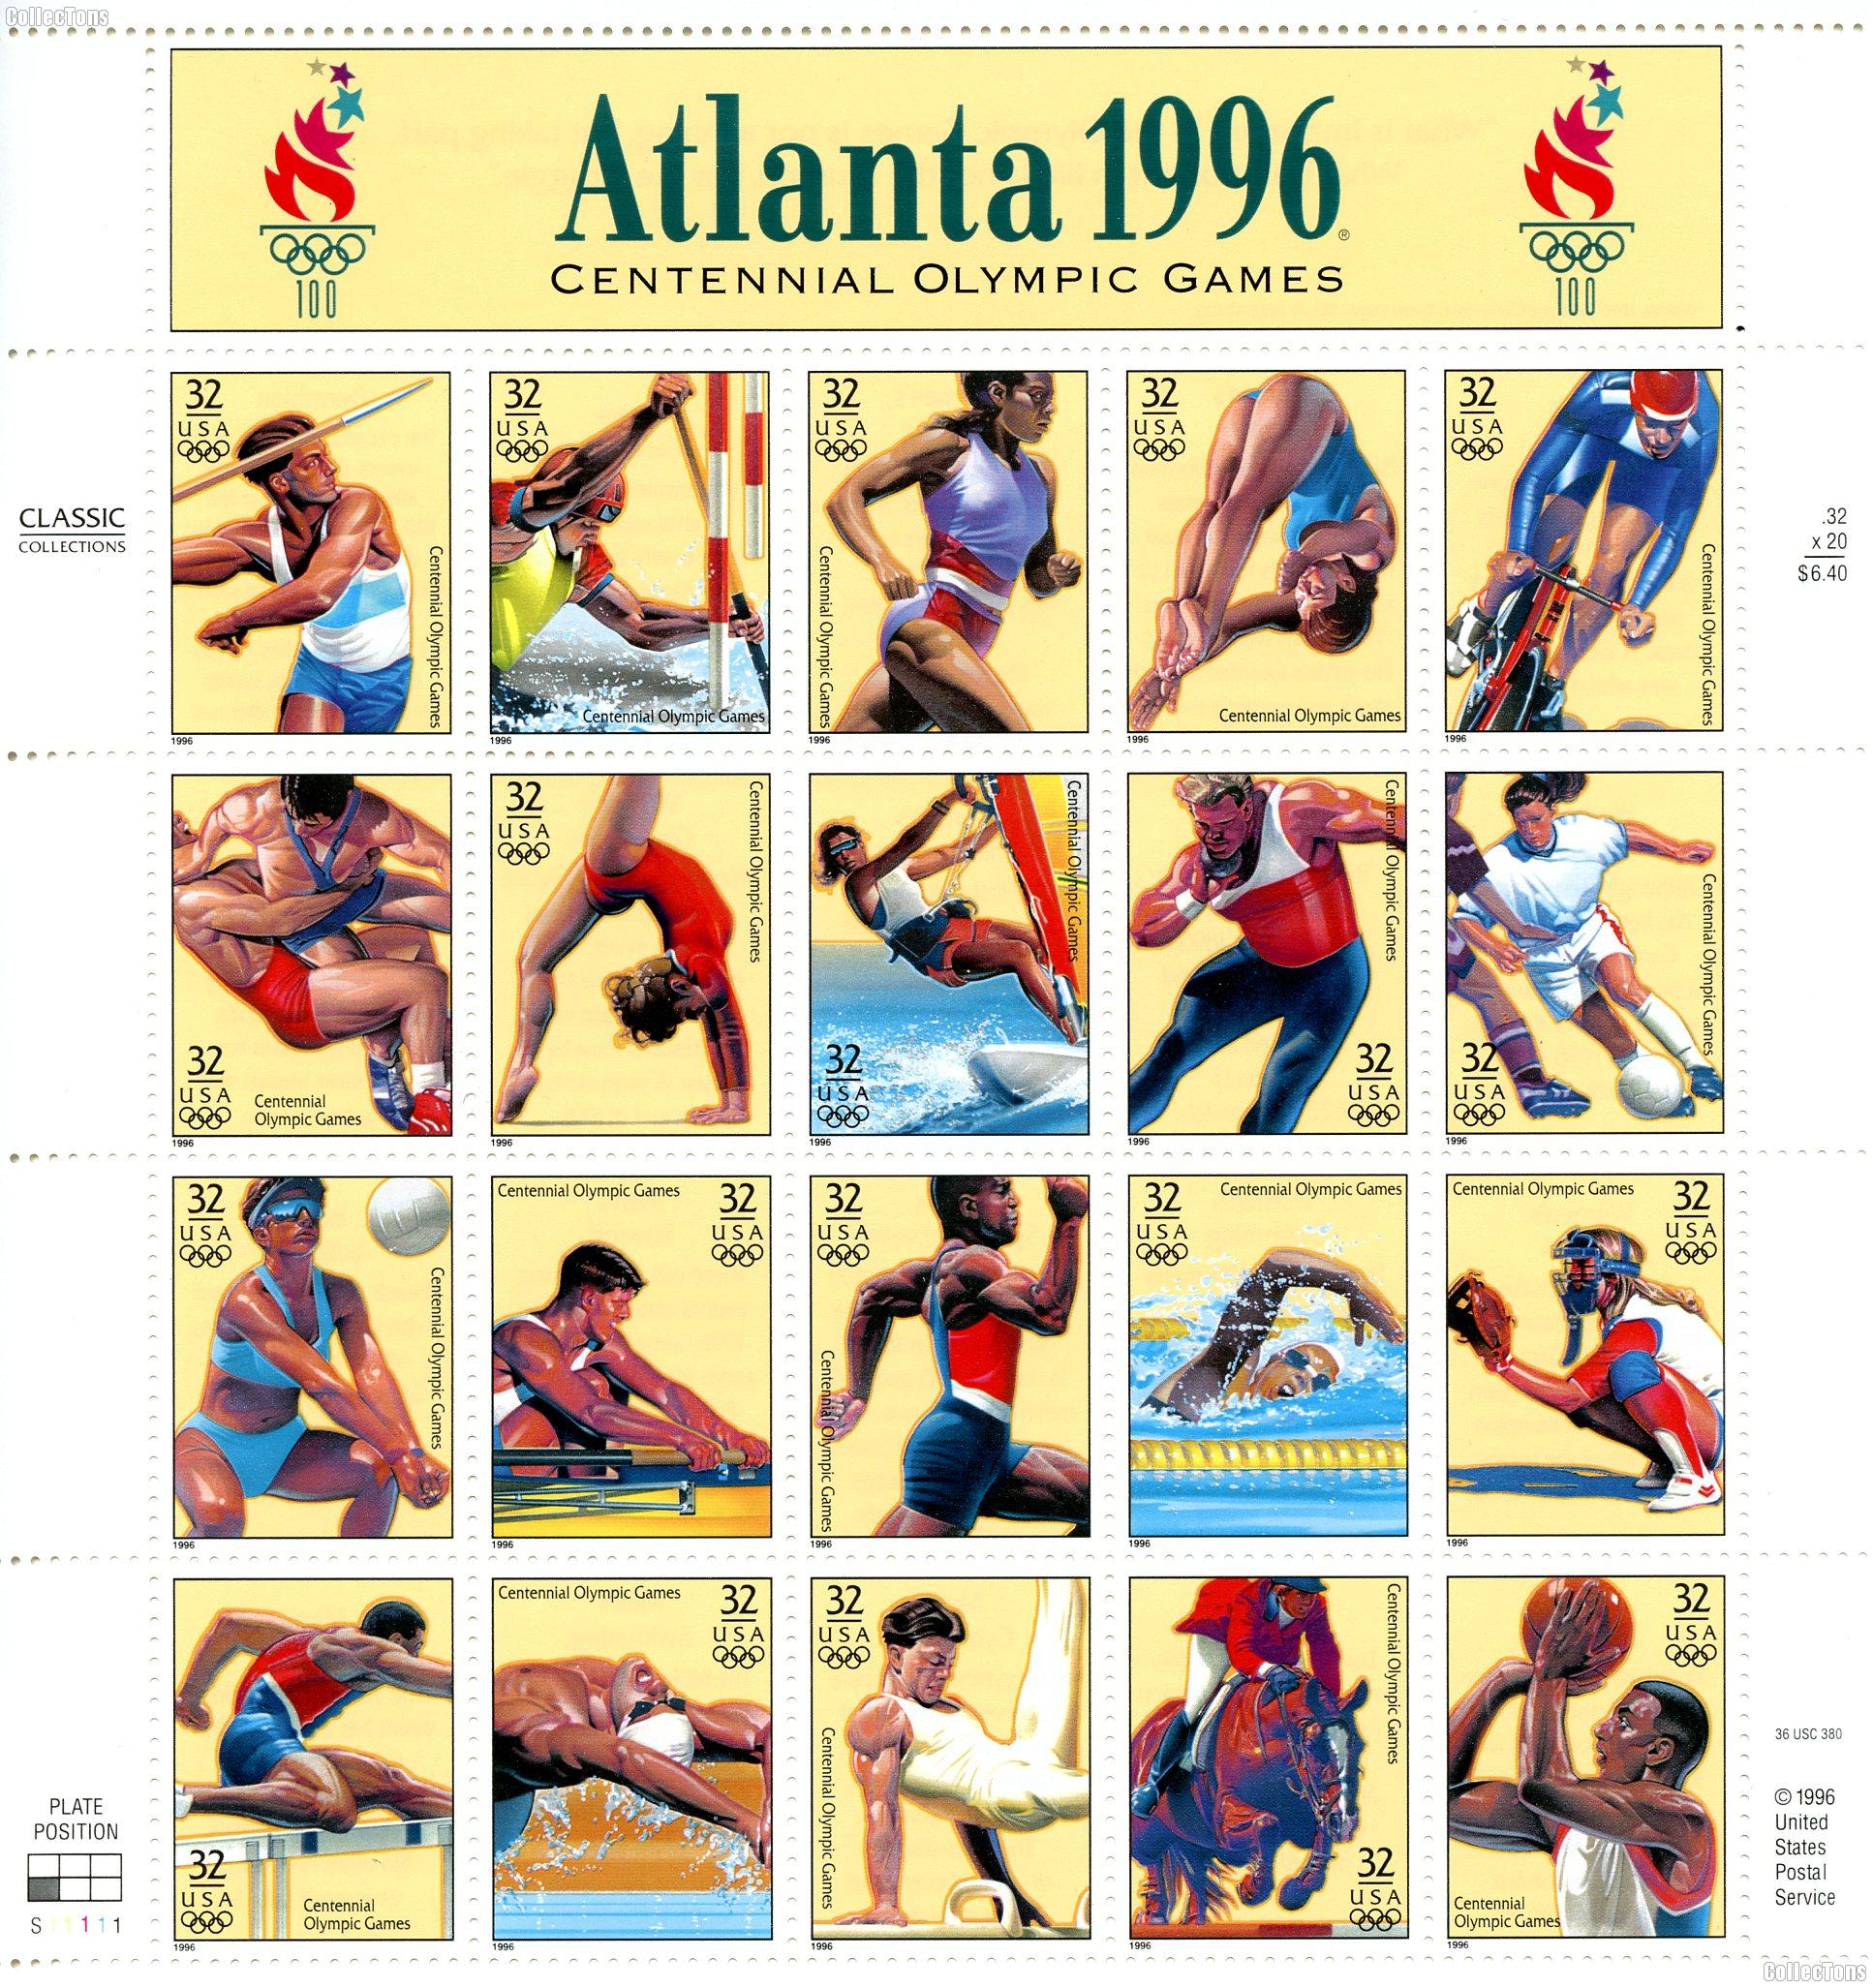 1996 Centennial Olympic Games 32 Cent US Postage Stamp MNH Sheet of 20 Scott #3068